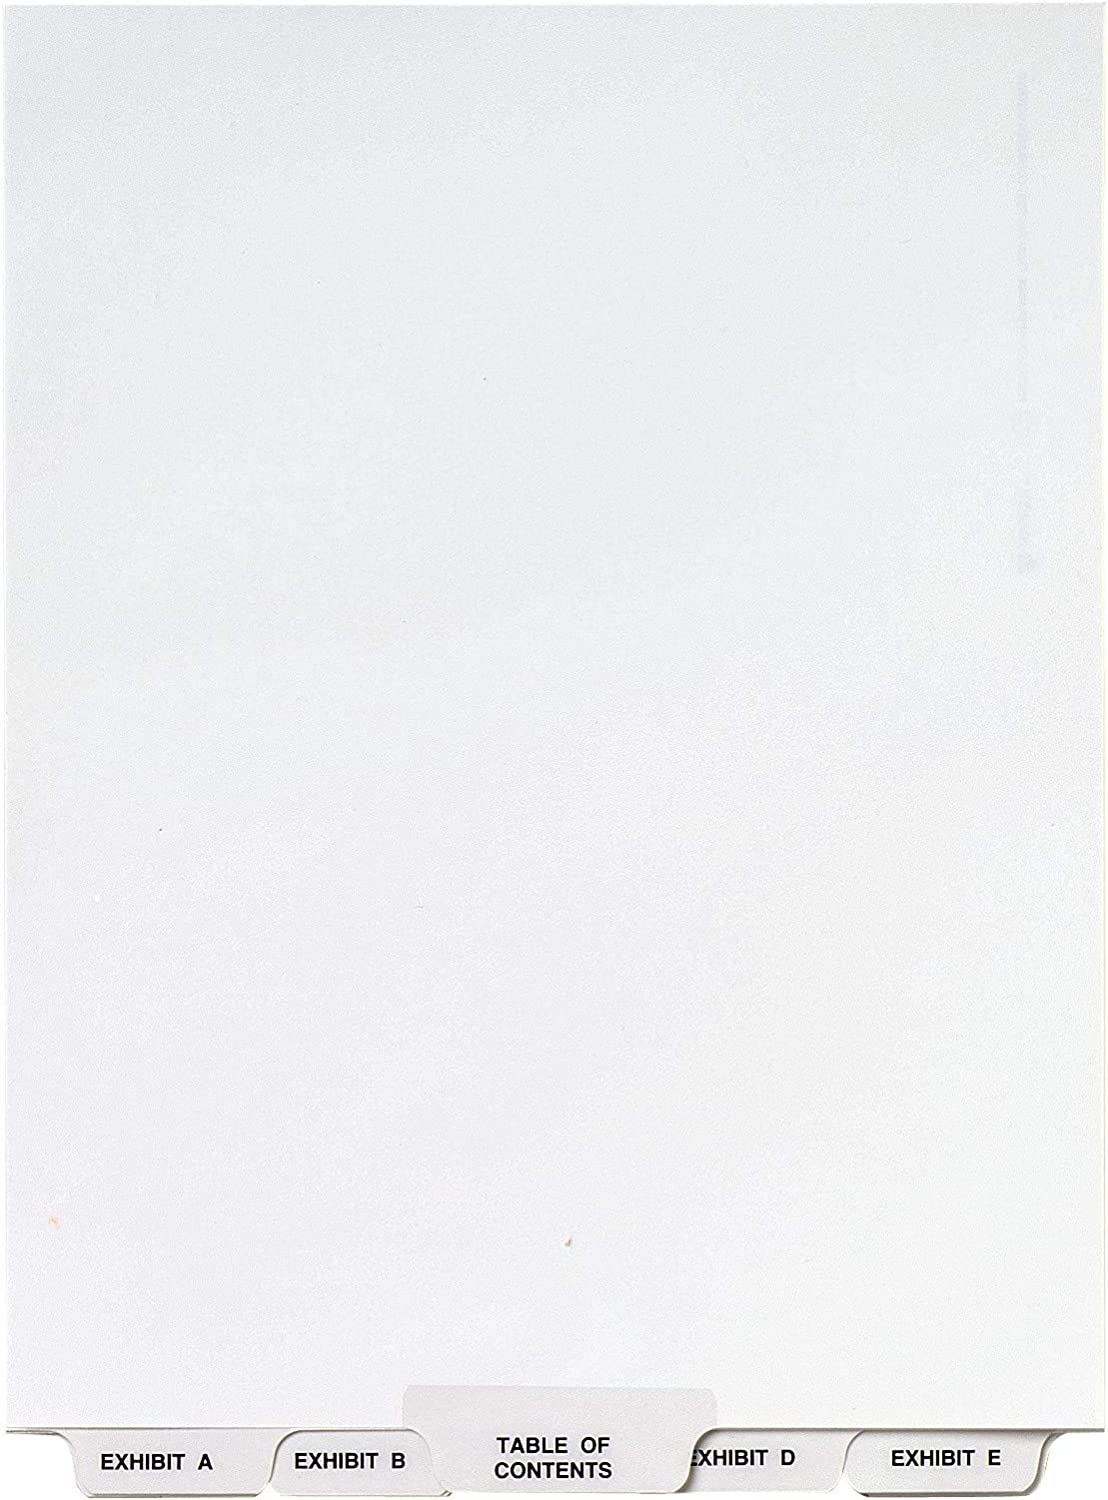 Avery Avery-Style Lgl Bottom Tab Dividers, 27-Tab, Exhibit A-Z, Letter Size (8.5 x 11), White, 27 per Set (11376) : Binder Index Dividers : Office Products